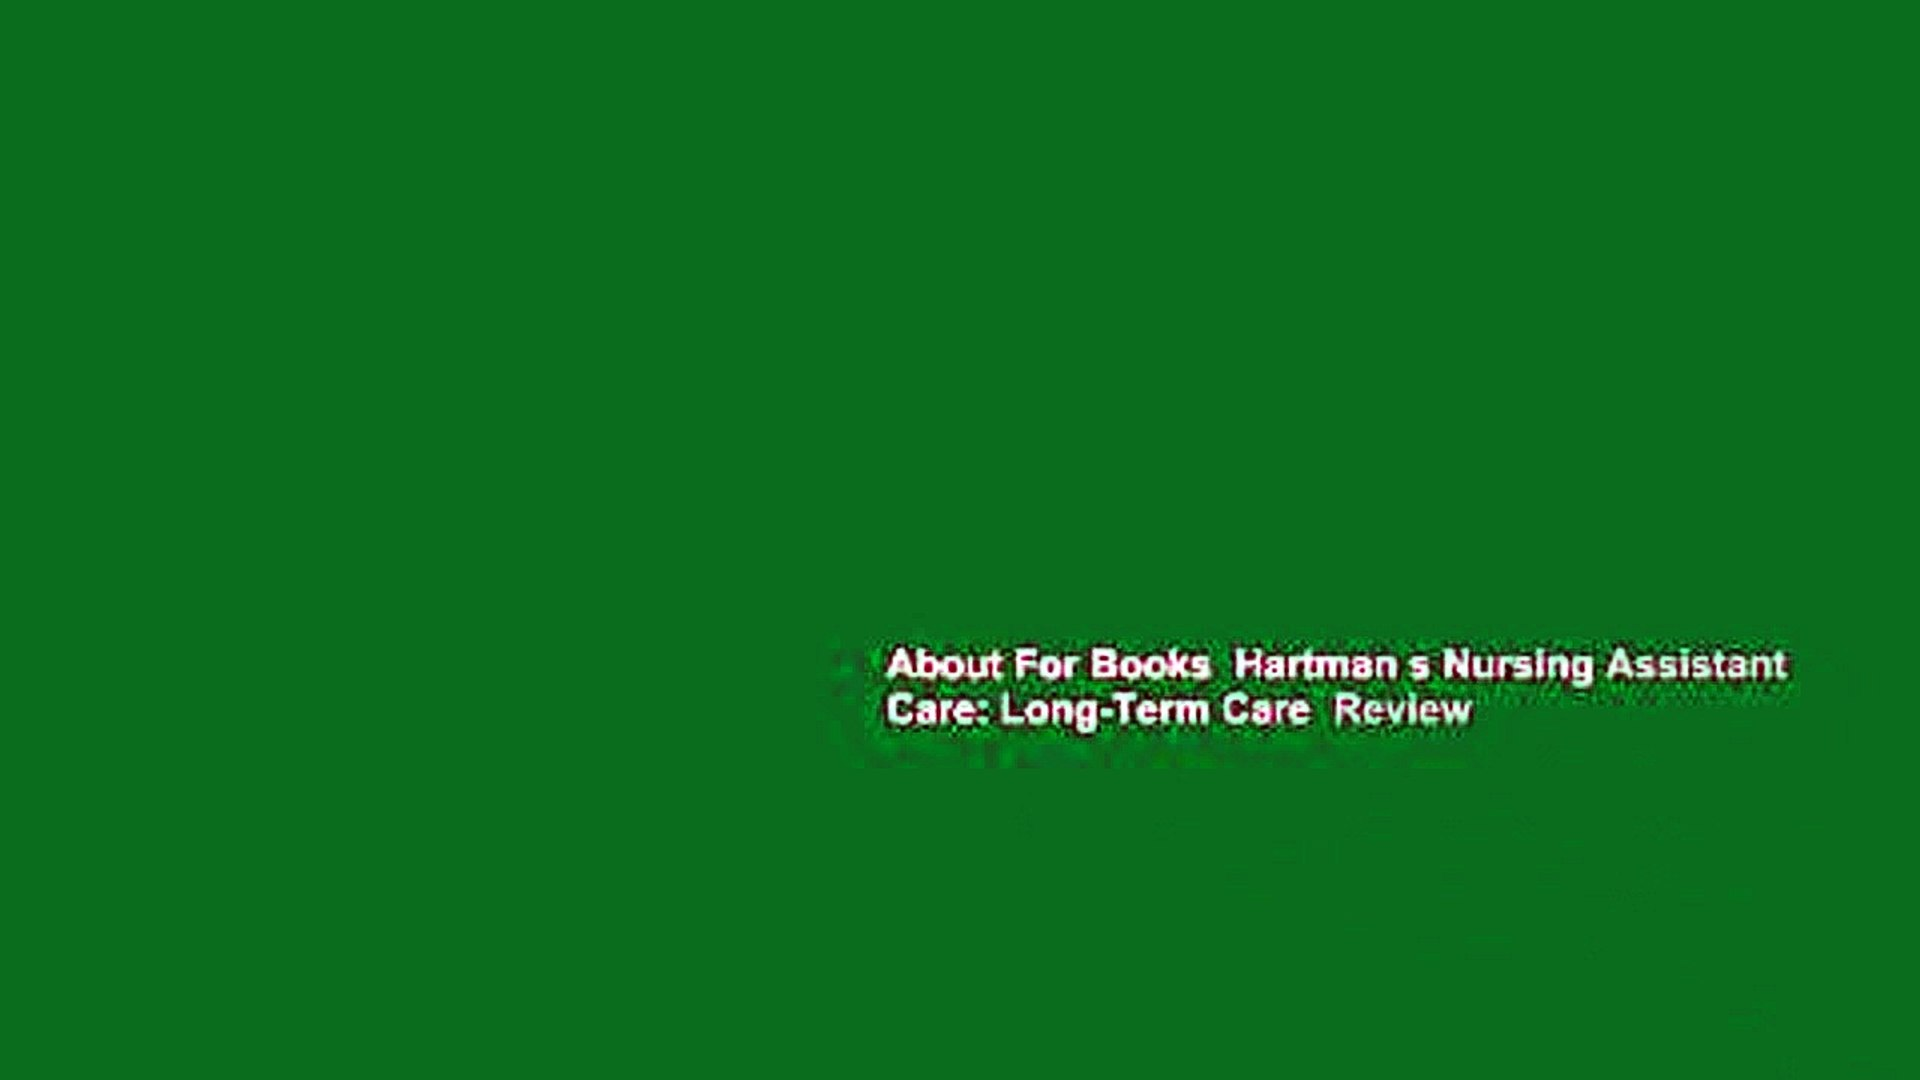 About For Books  Hartman s Nursing Assistant Care: Long-Term Care  Review